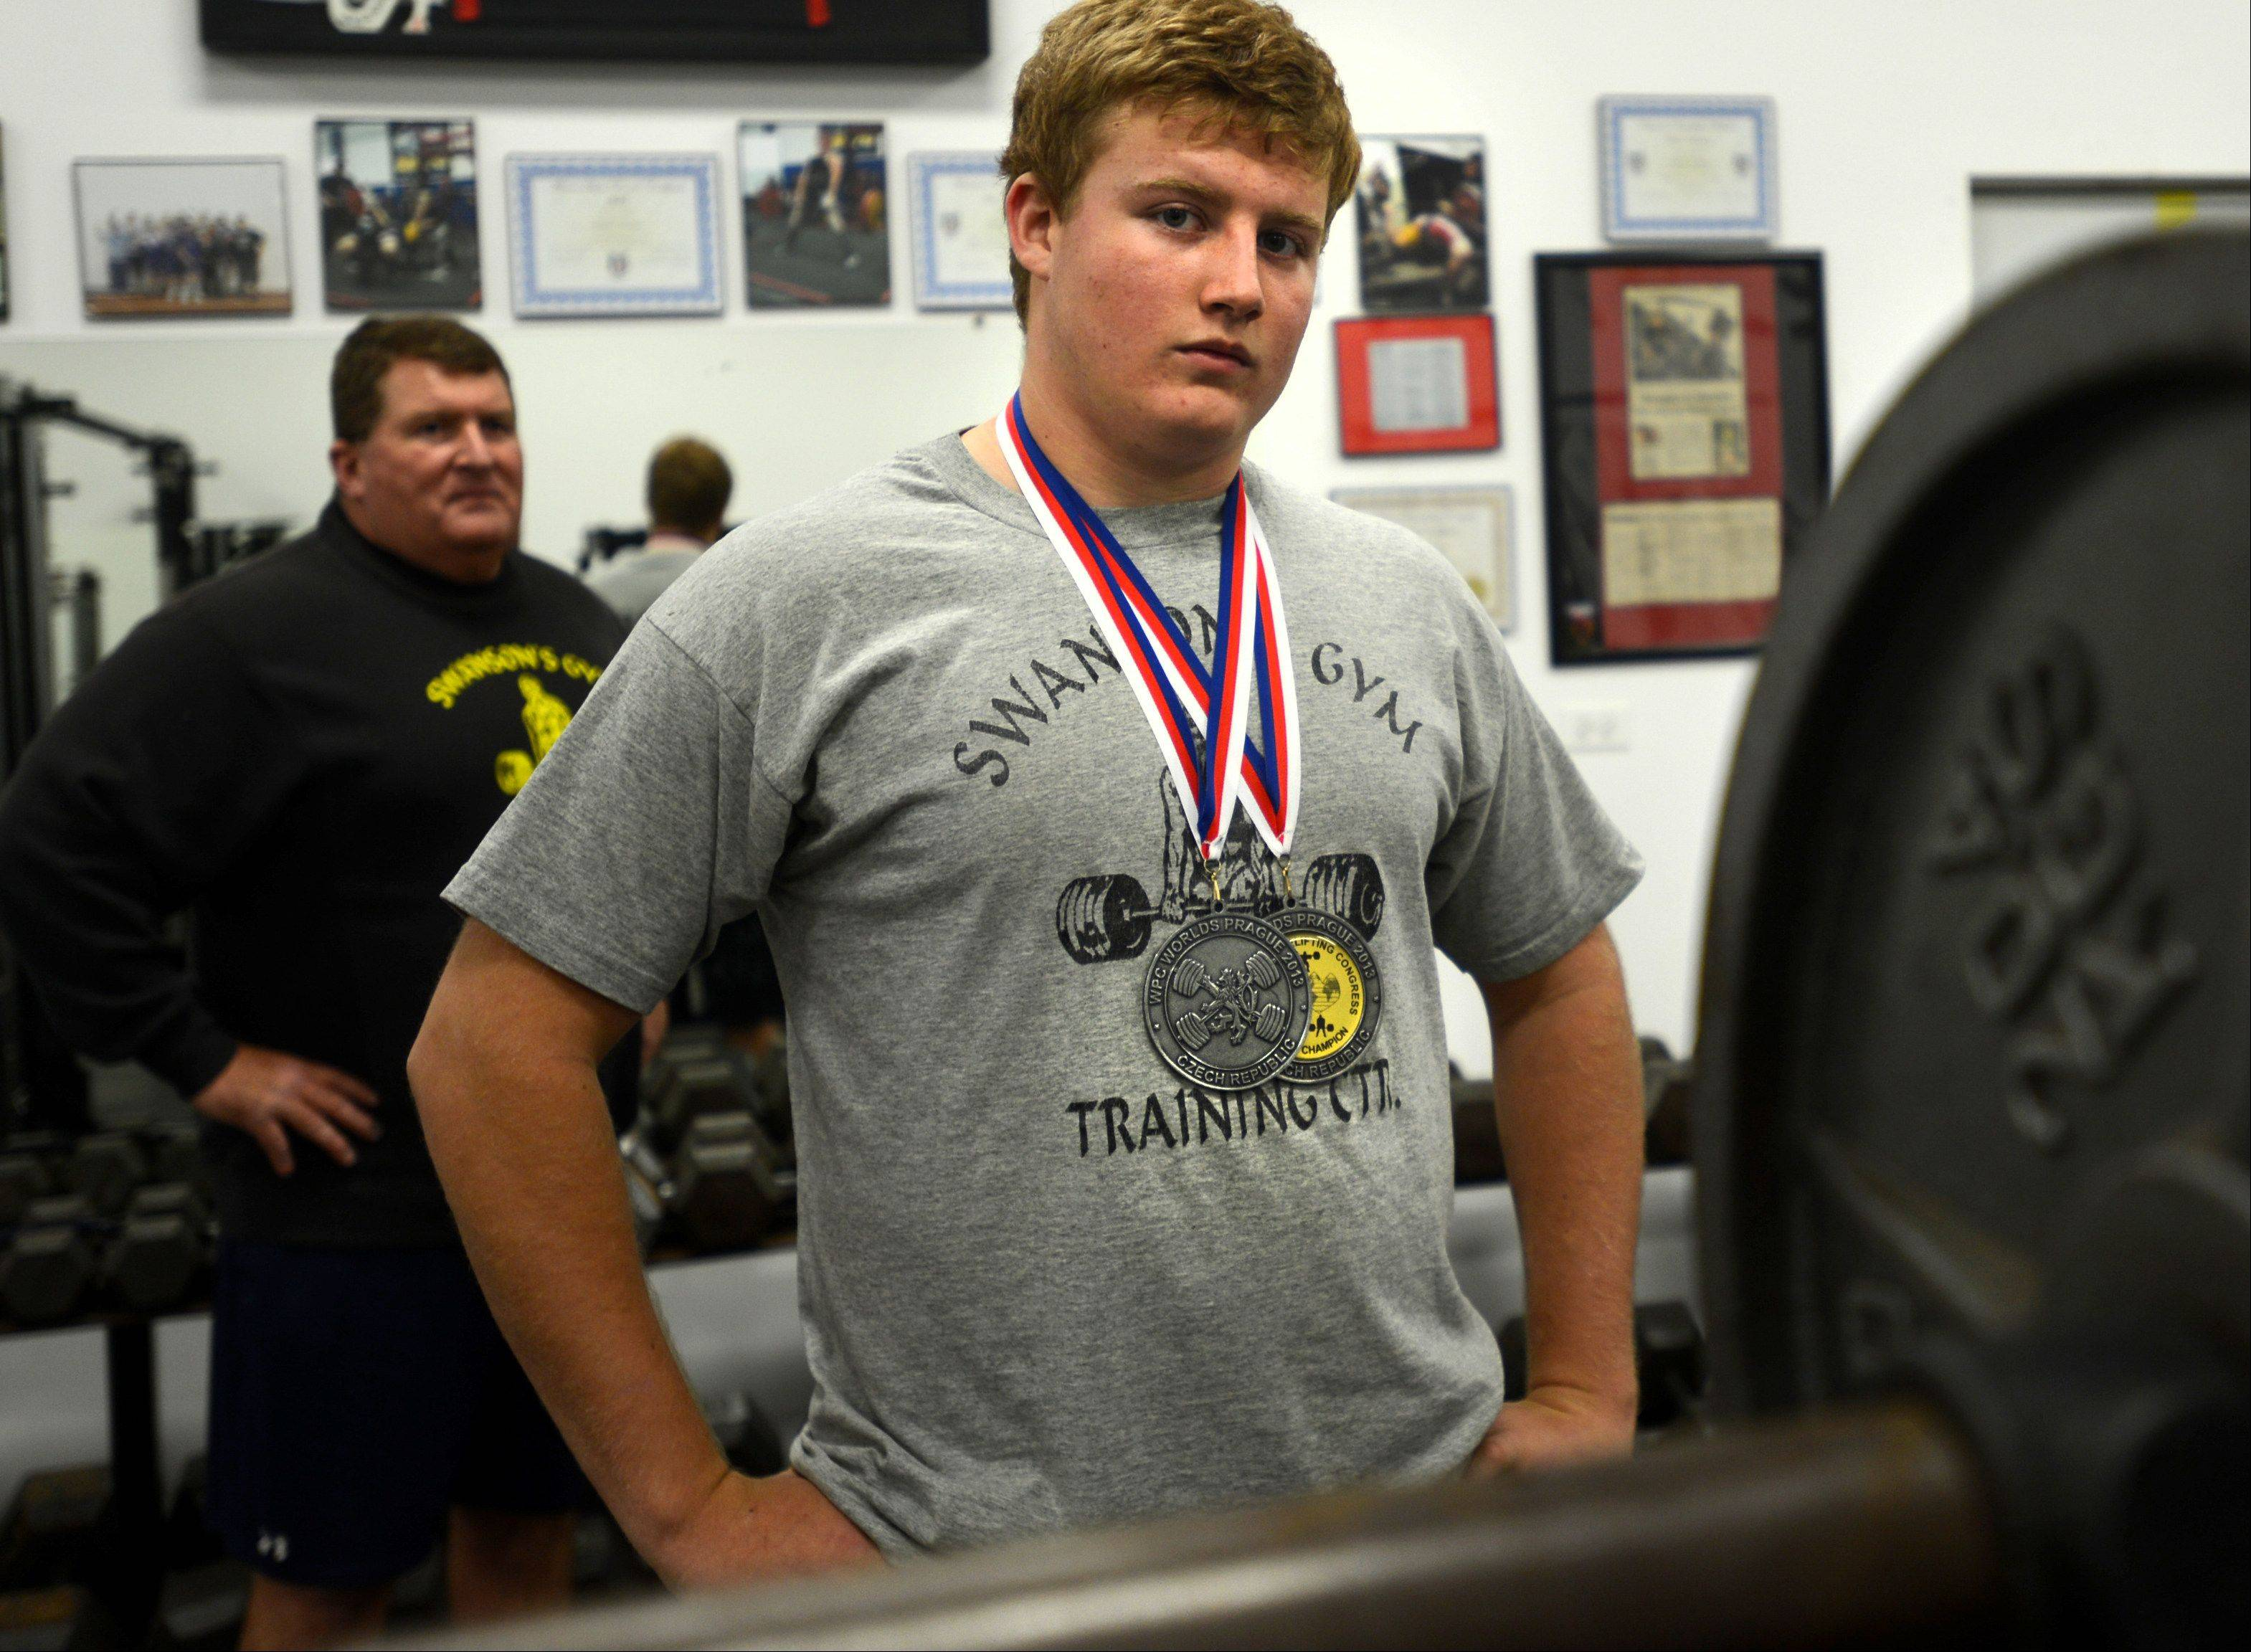 Dominic Swanson, a Huntley High School sophomore, just became the holder of five world weightlifting records. Dad Gary, a former powerlifter himself, is the family trainer.